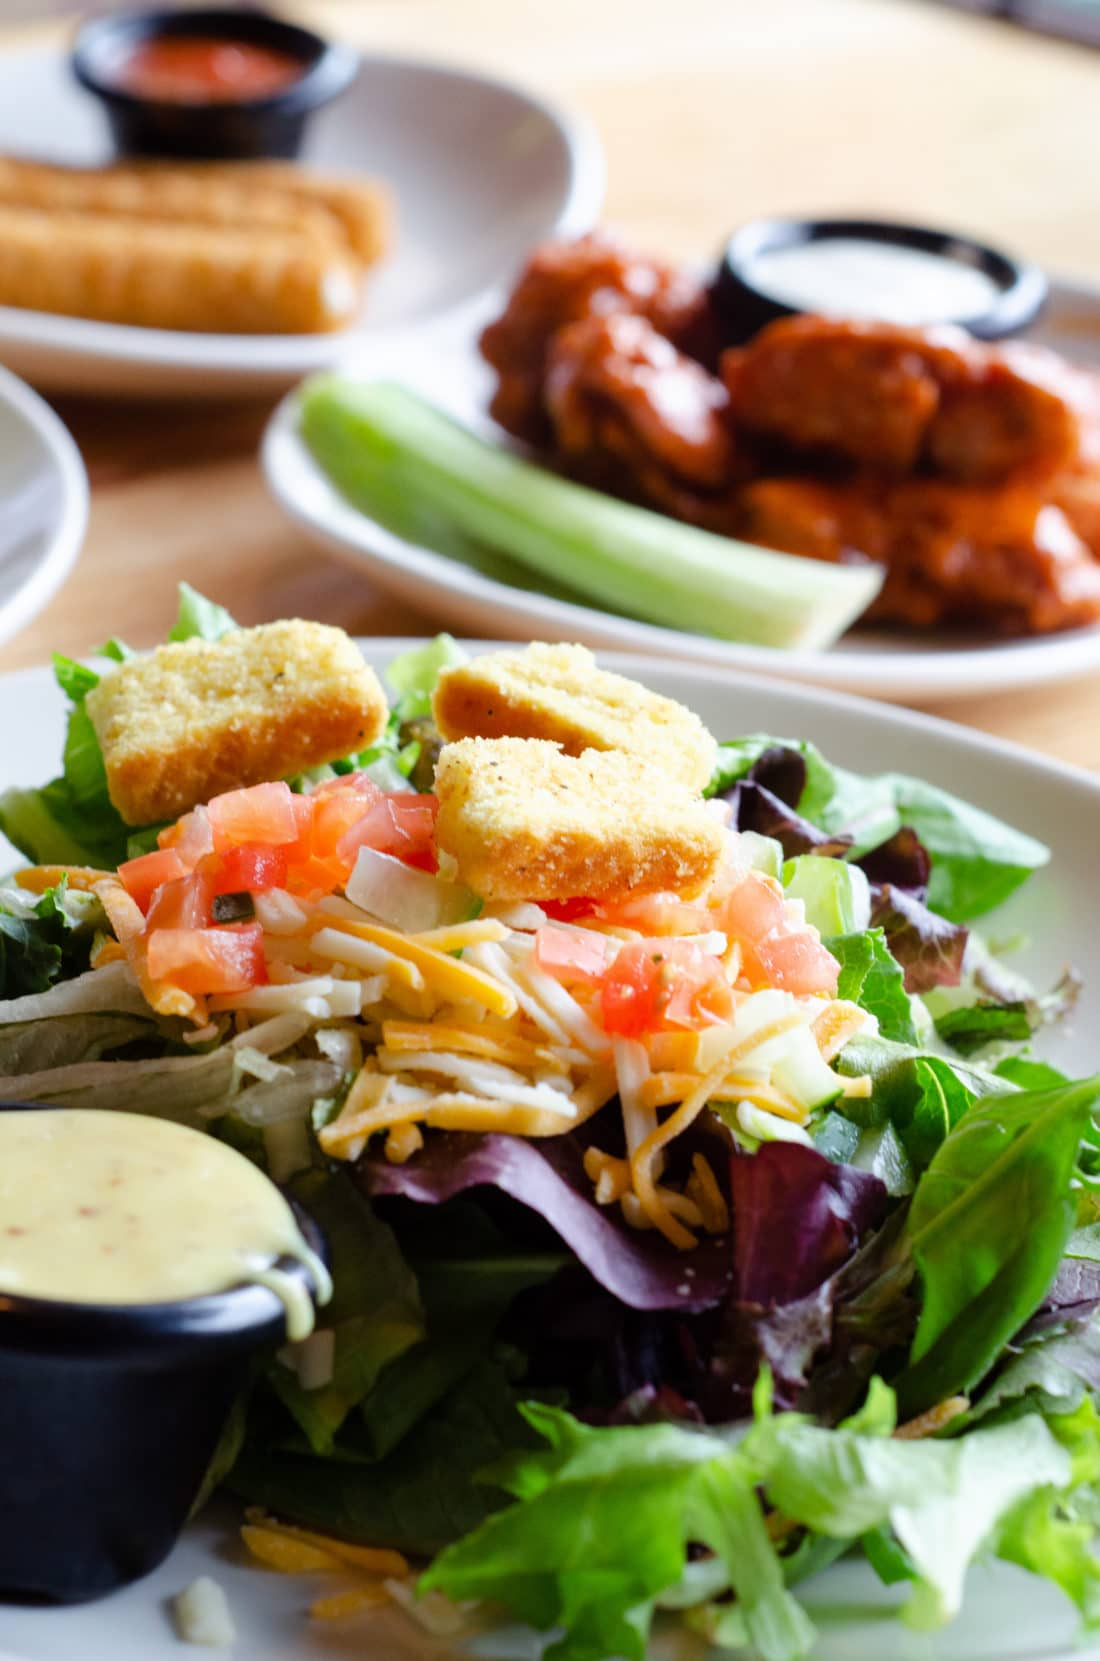 Garden Salad from local Applebee's, part of Three-Course Meal. Take advantage of the Applebee's Delicious New Three-Course Meal's Starting at $12.